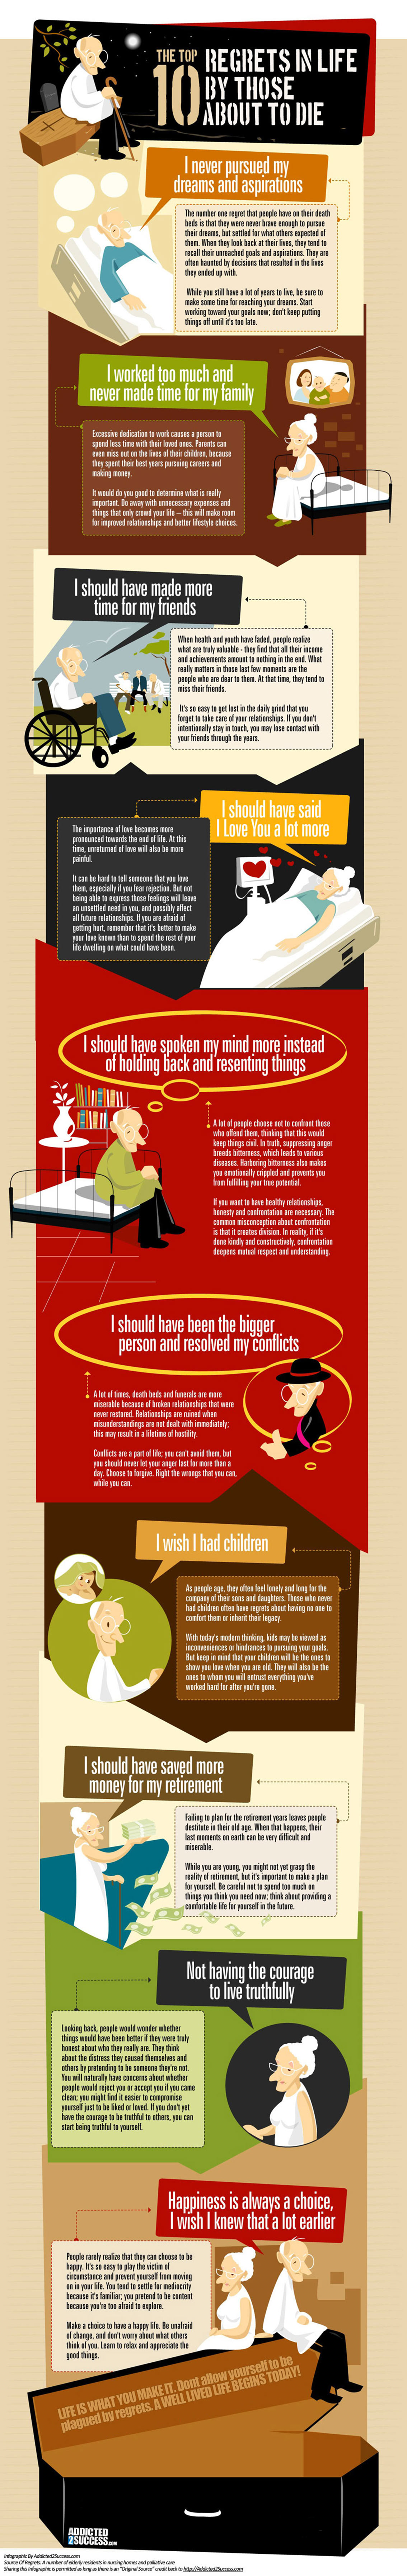 Top 10 Regrets In Life By Those About To Die Infographic